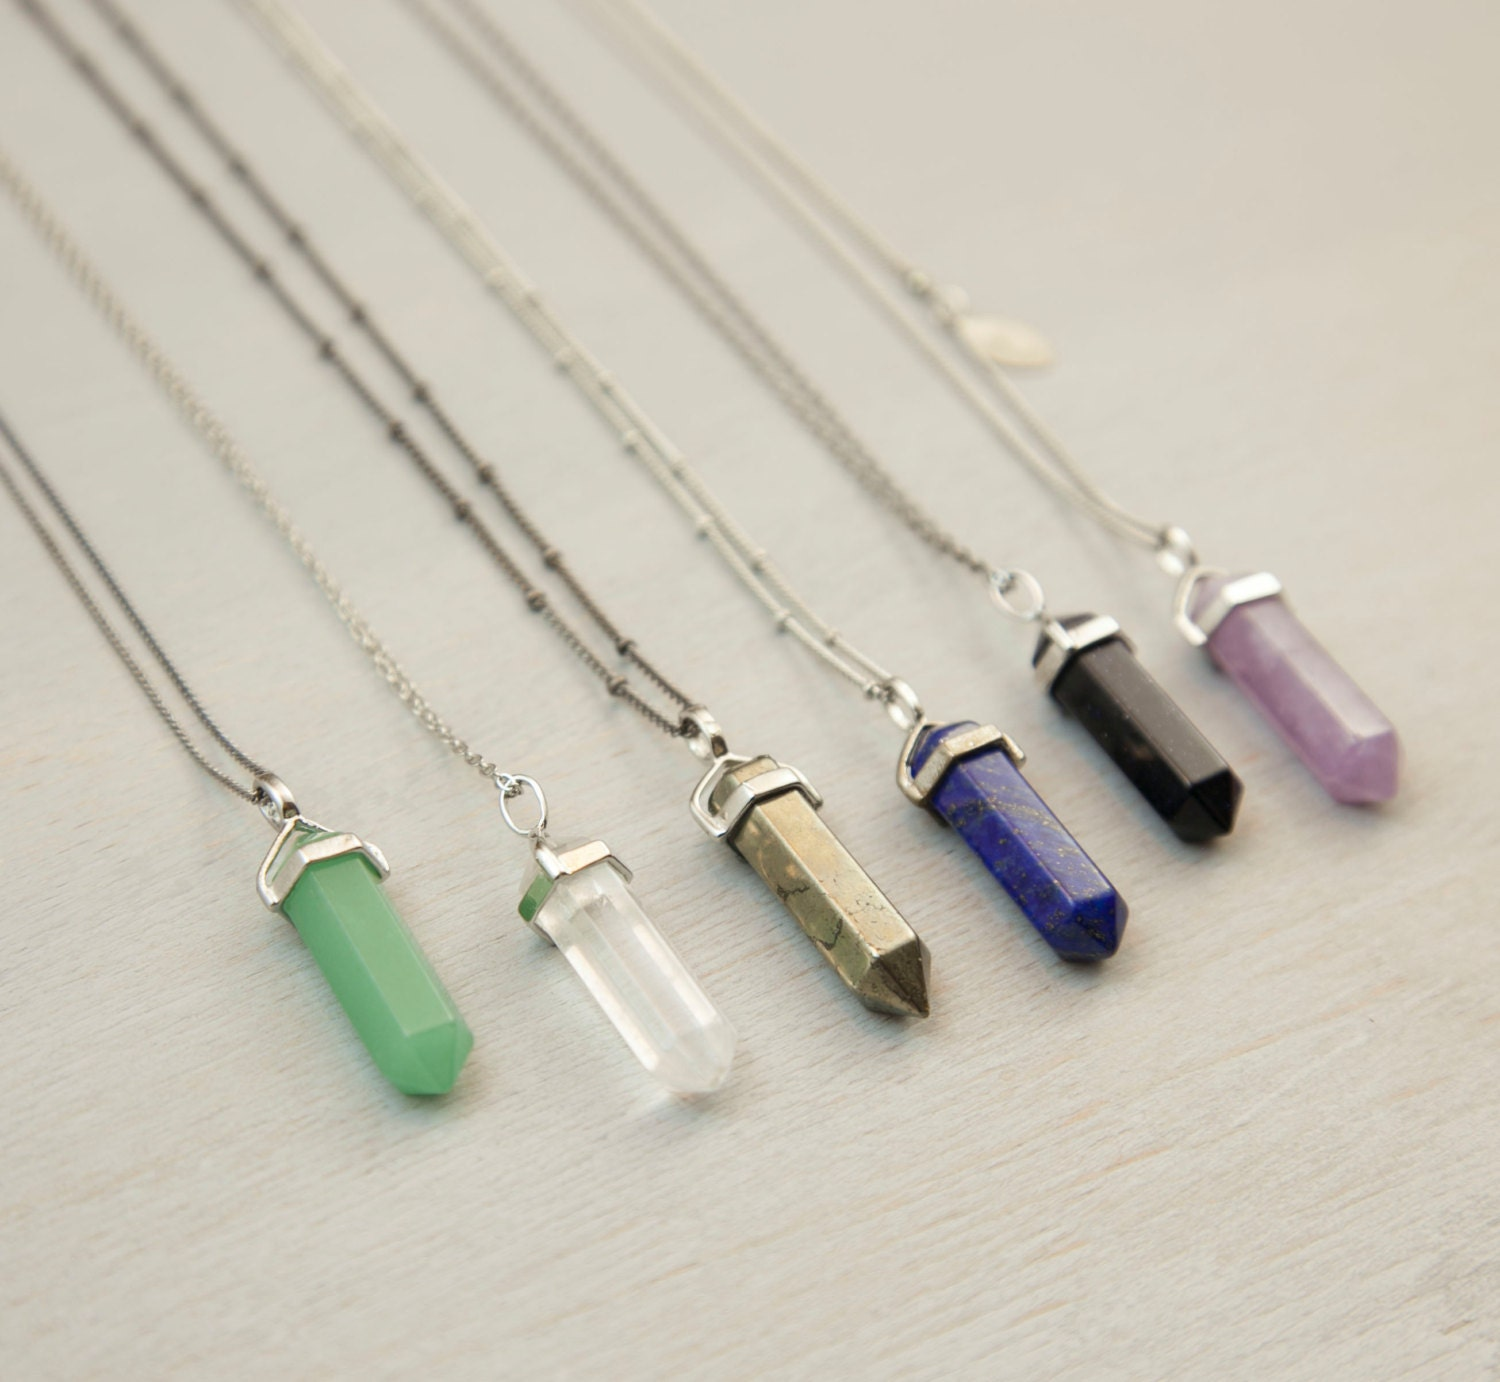 stone simply product crystal natural store necklace gift products image